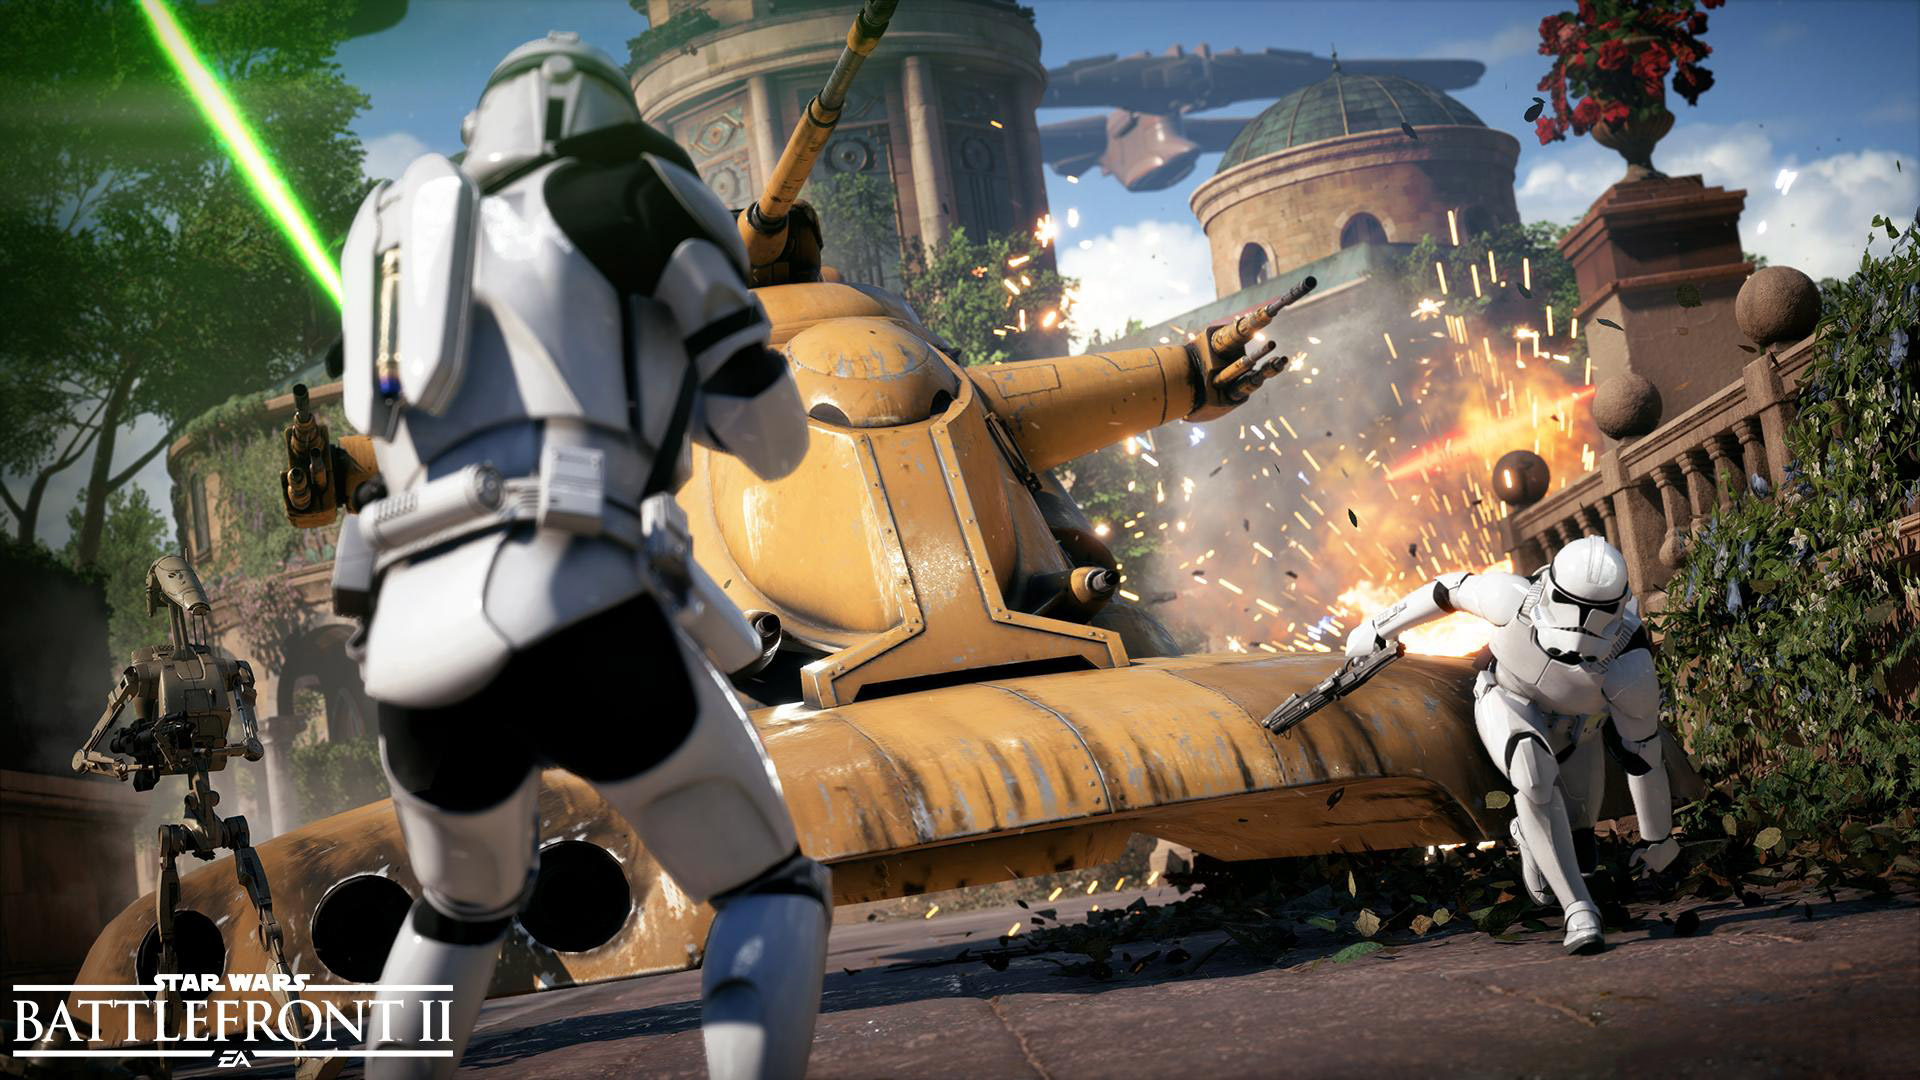 Star Wars Battlefront 2 Wallpaper Hd Posted By John Anderson